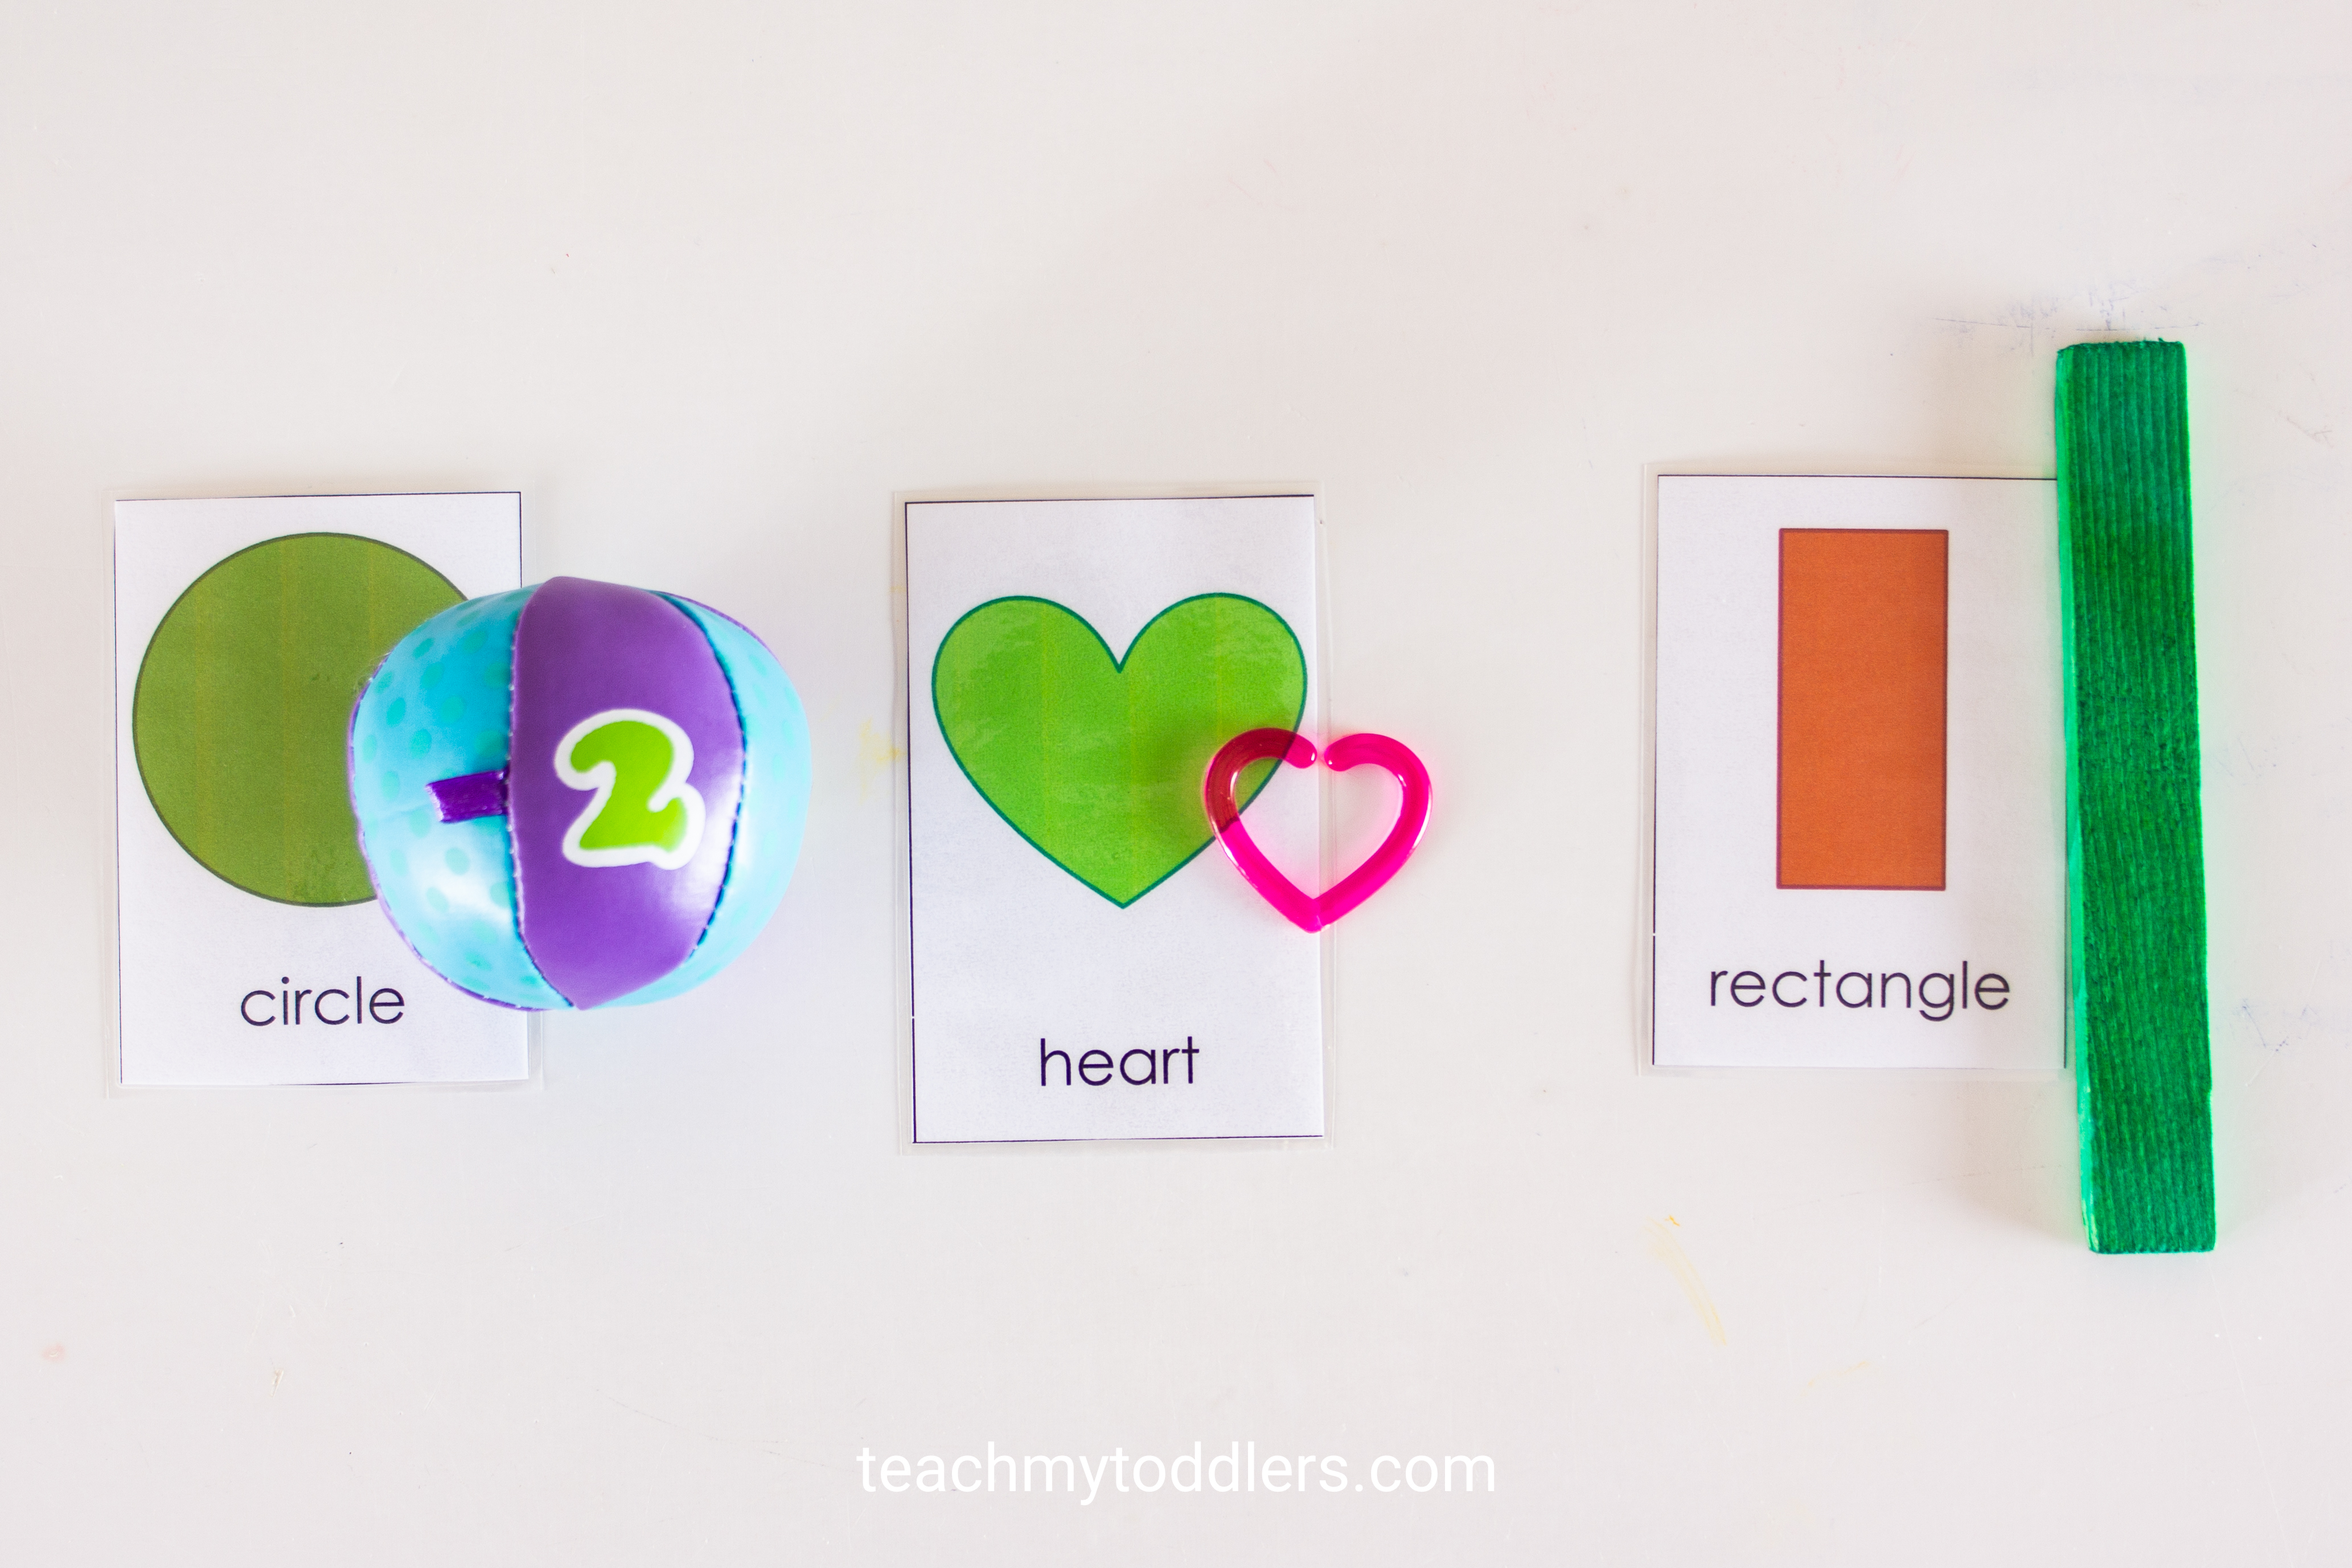 Find out how to use this shape cards activity to teach preschoolers shapes